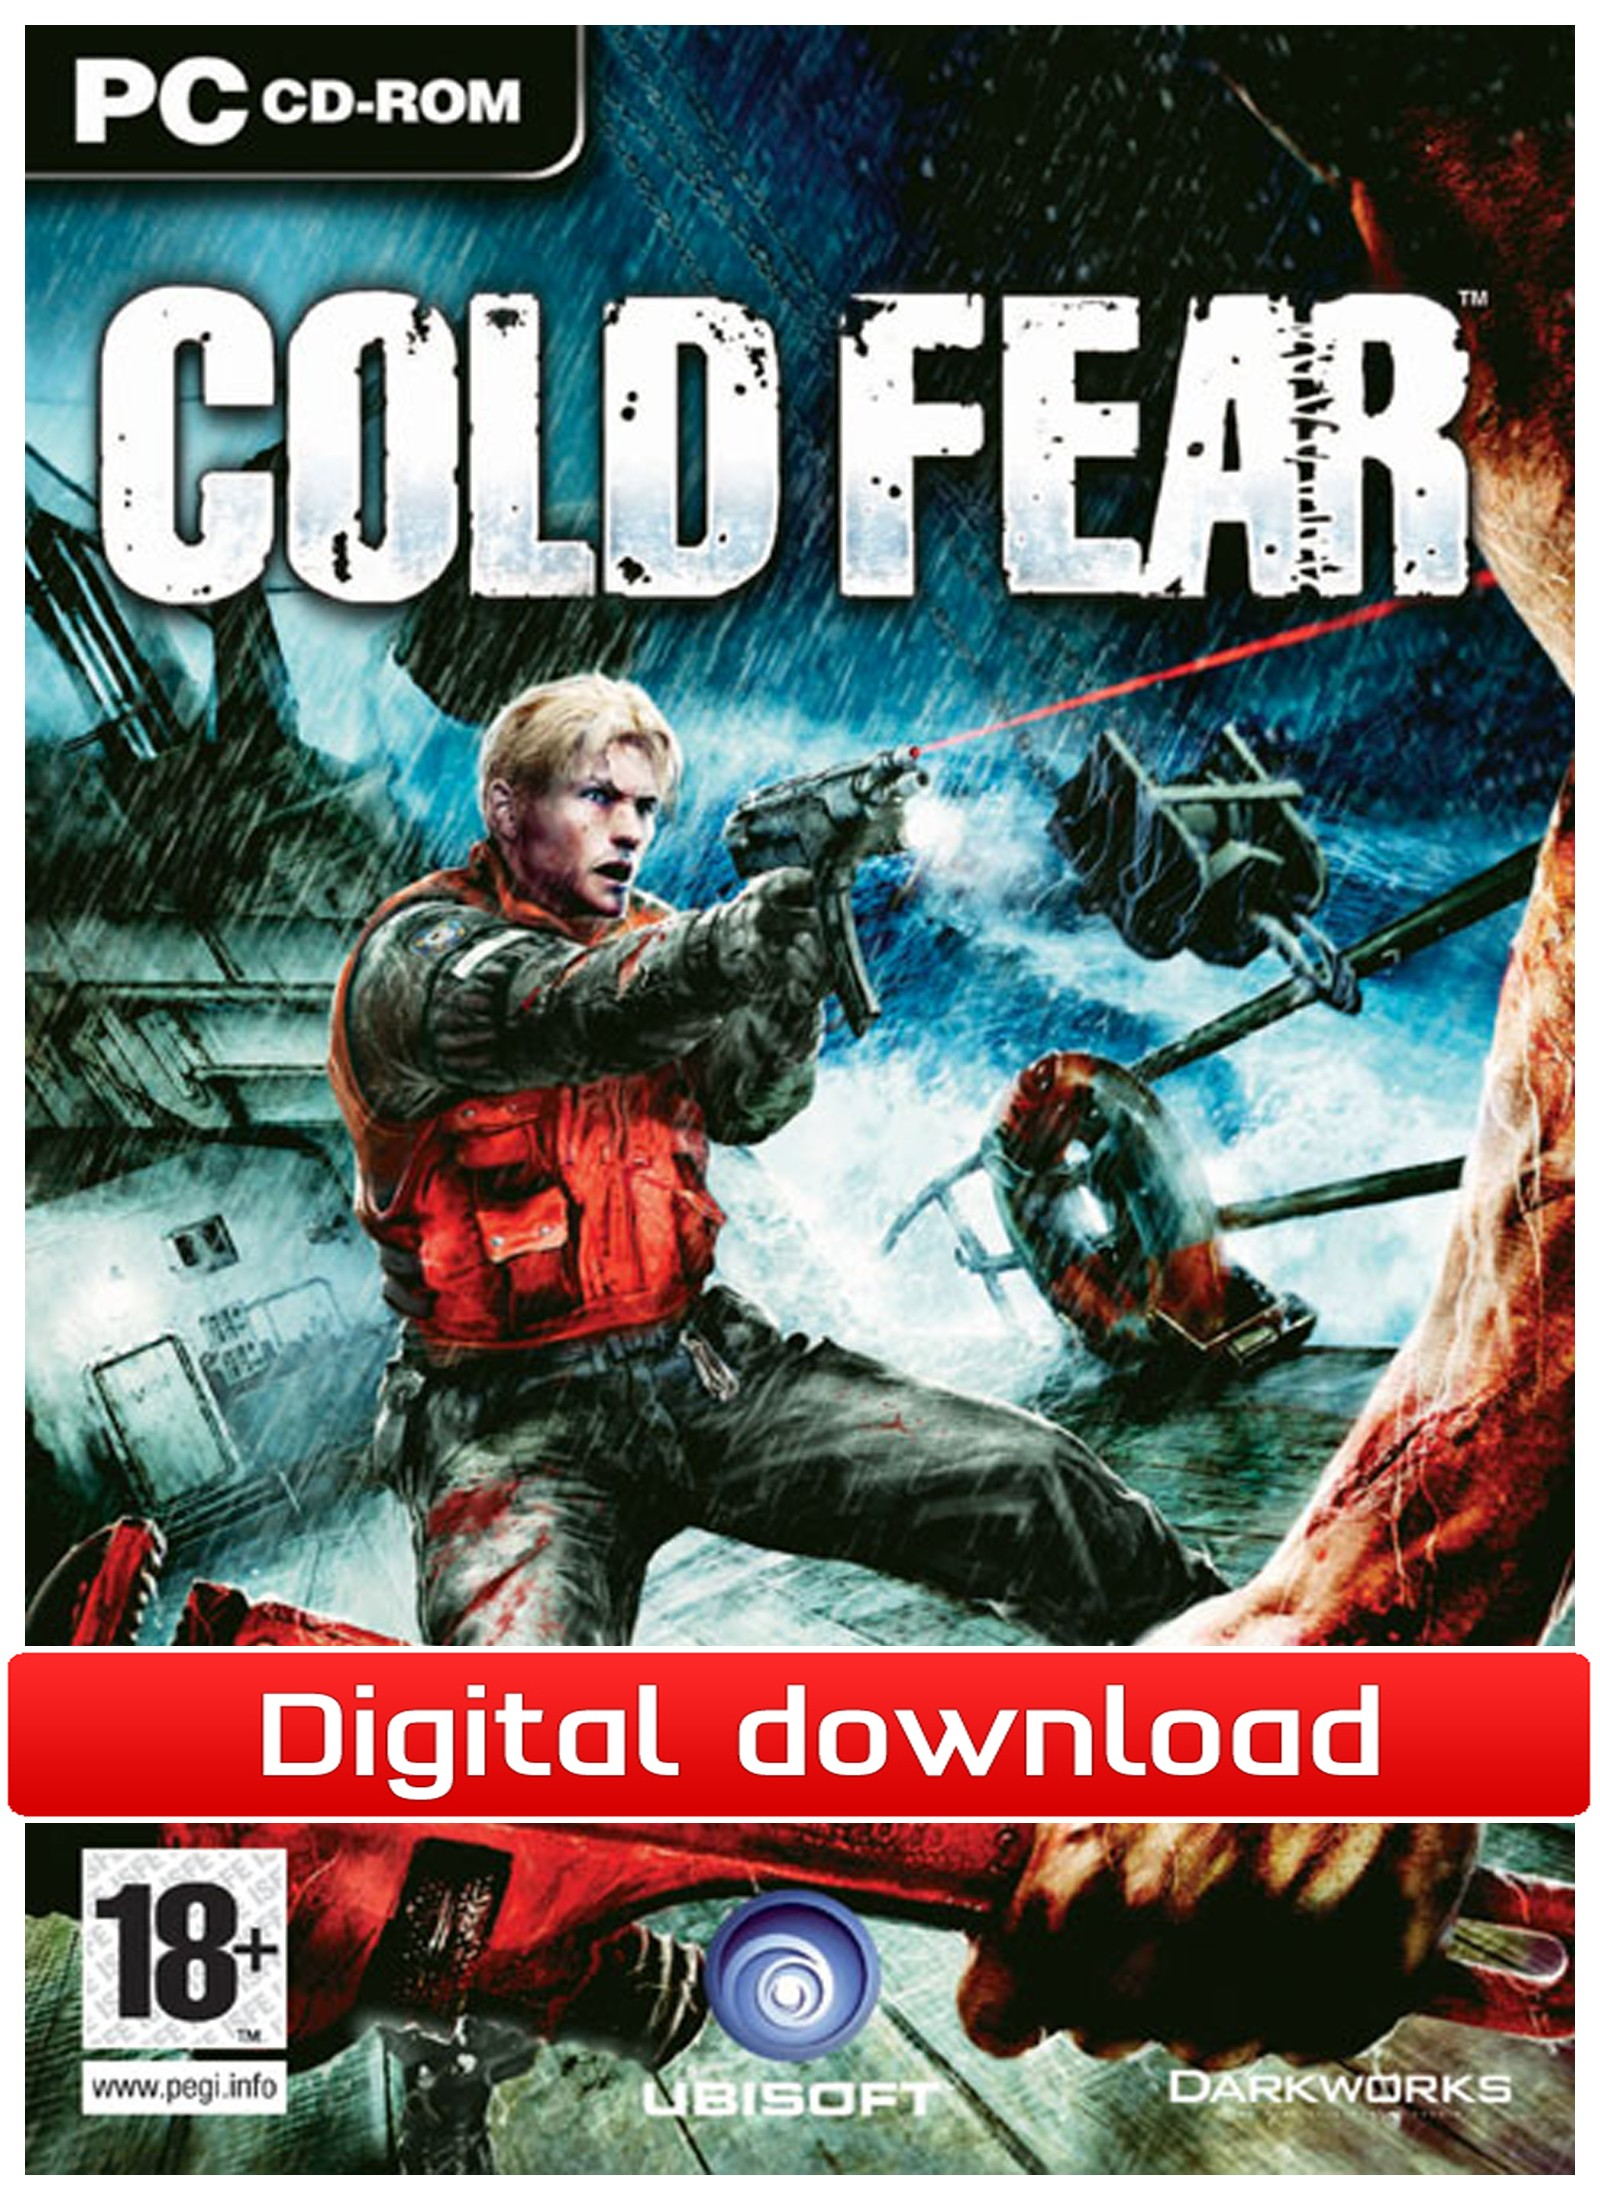 38803 : Cold Fear (PC nedlastning)